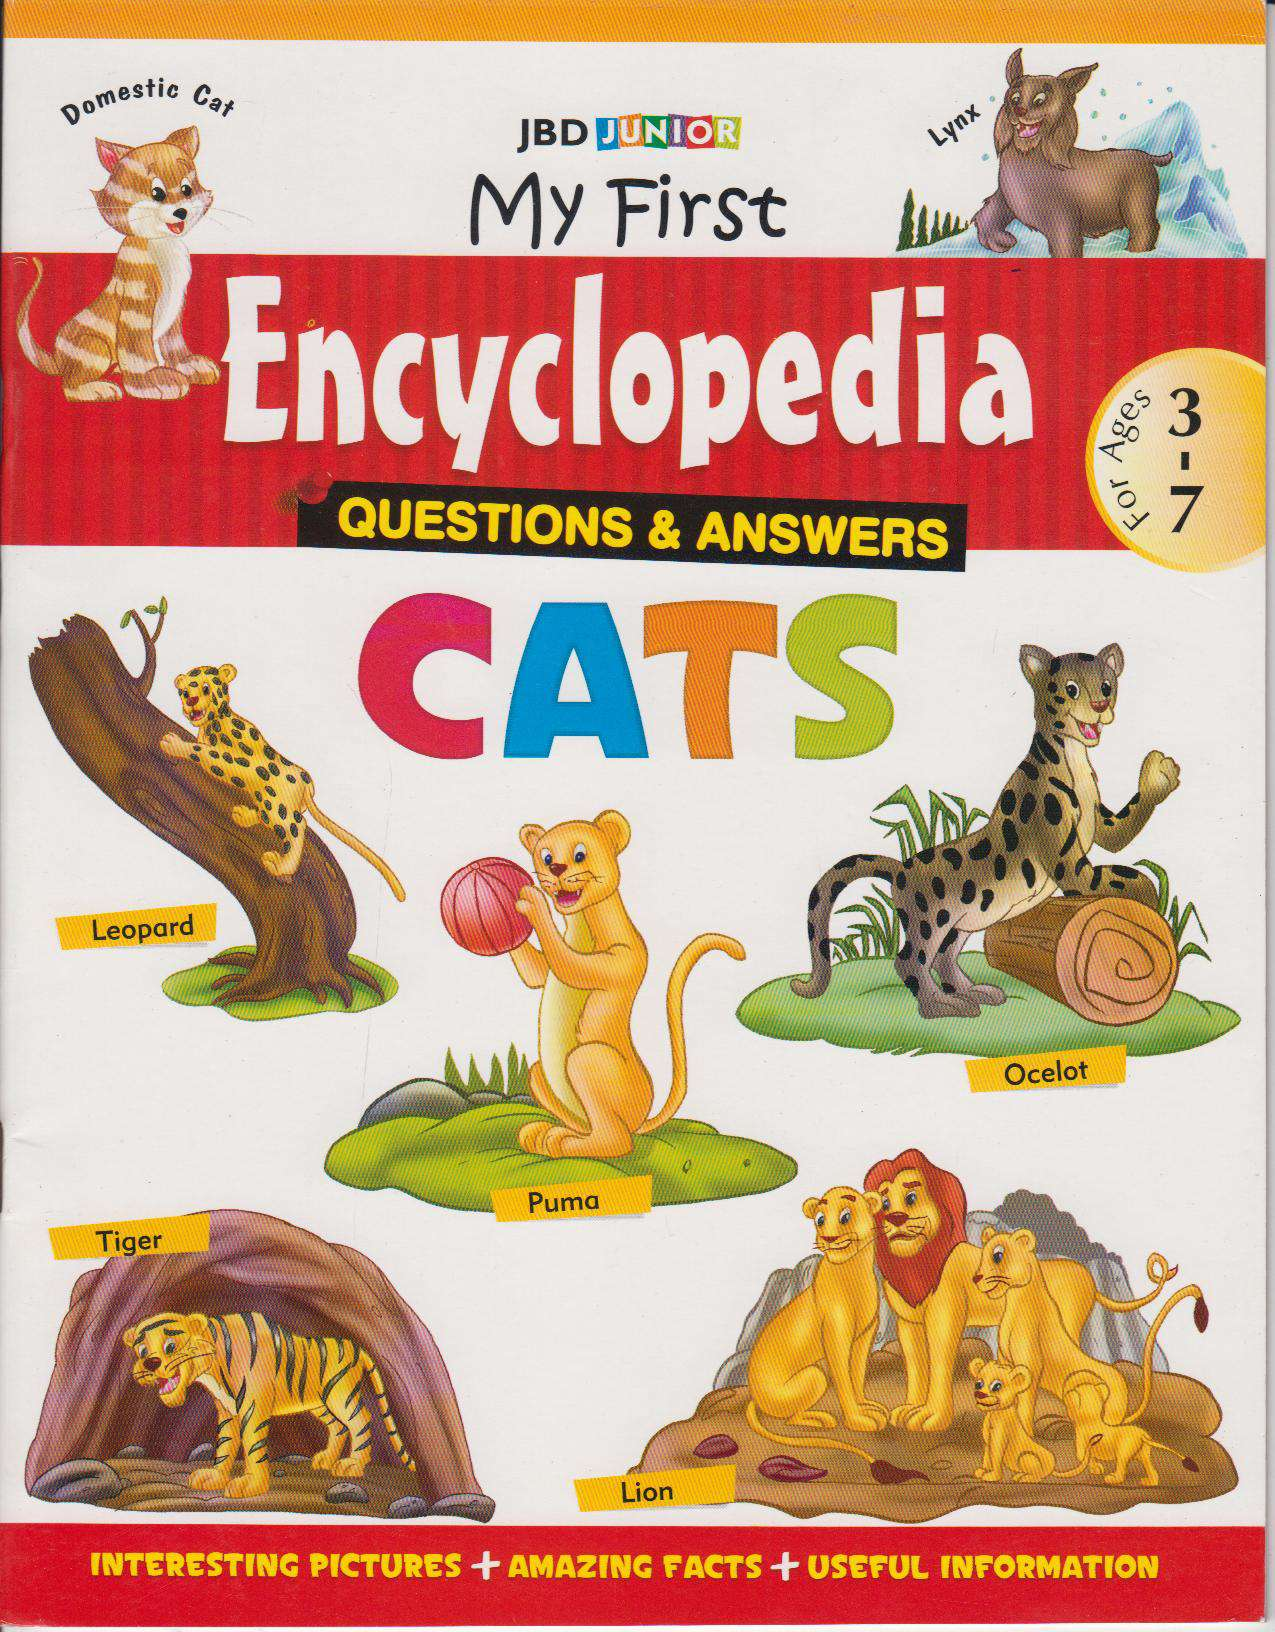 My First Encyclopedia Cats Questions & Answers